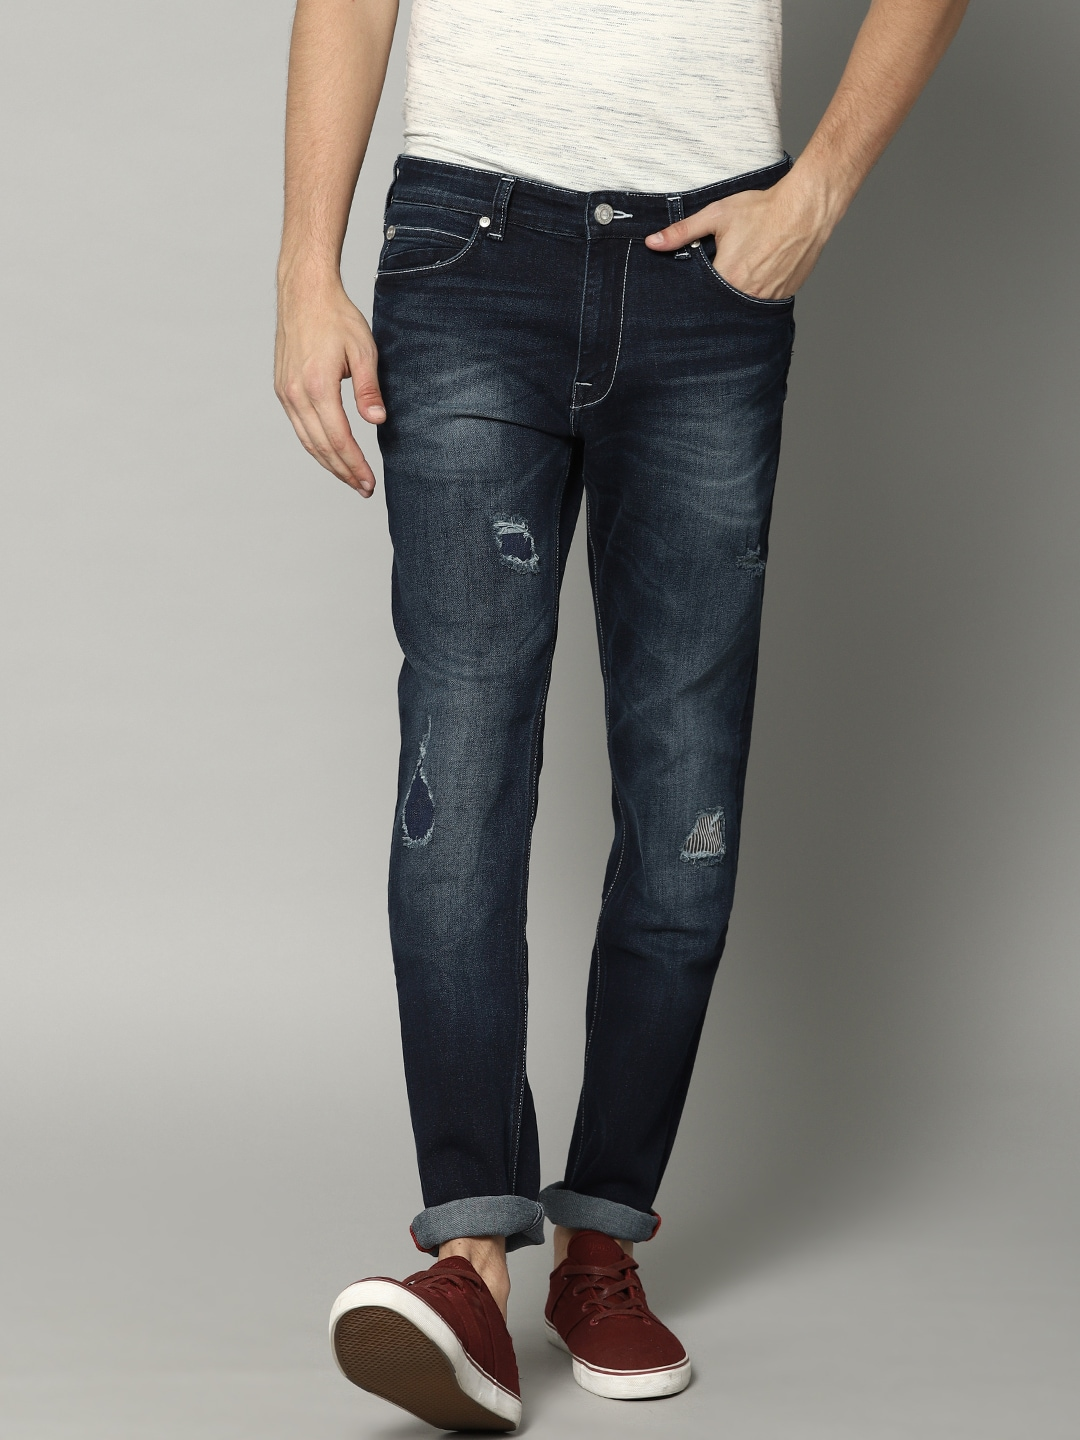 c9d41a2ae40 Mens Clothing - Buy Clothing for Men Online in India | Myntra